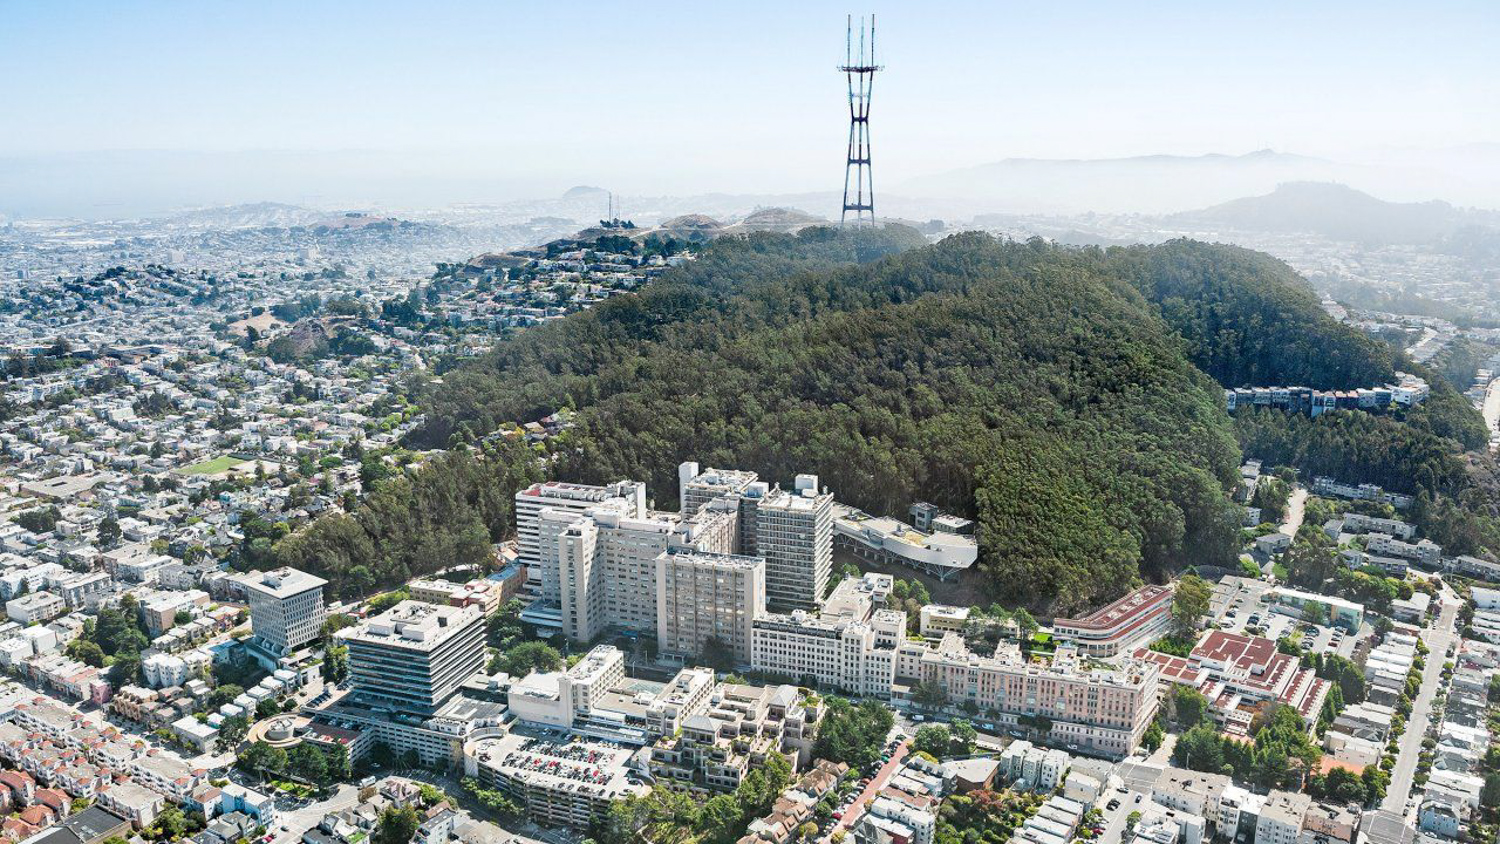 UCSF Parnassus Heights campus, image via UCSF